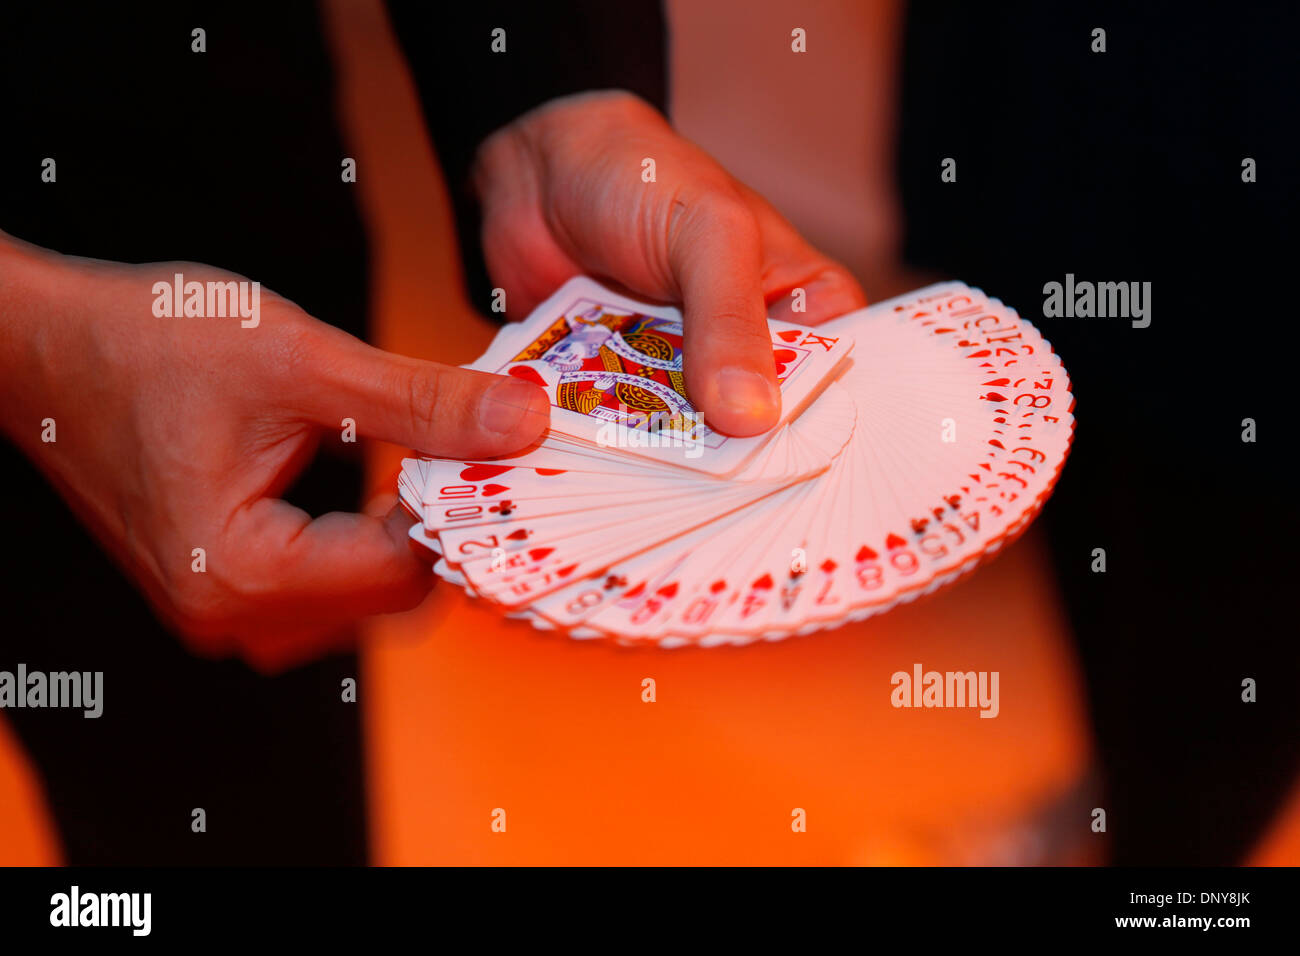 Conjurer fanning cards only showing the red suites - Stock Image